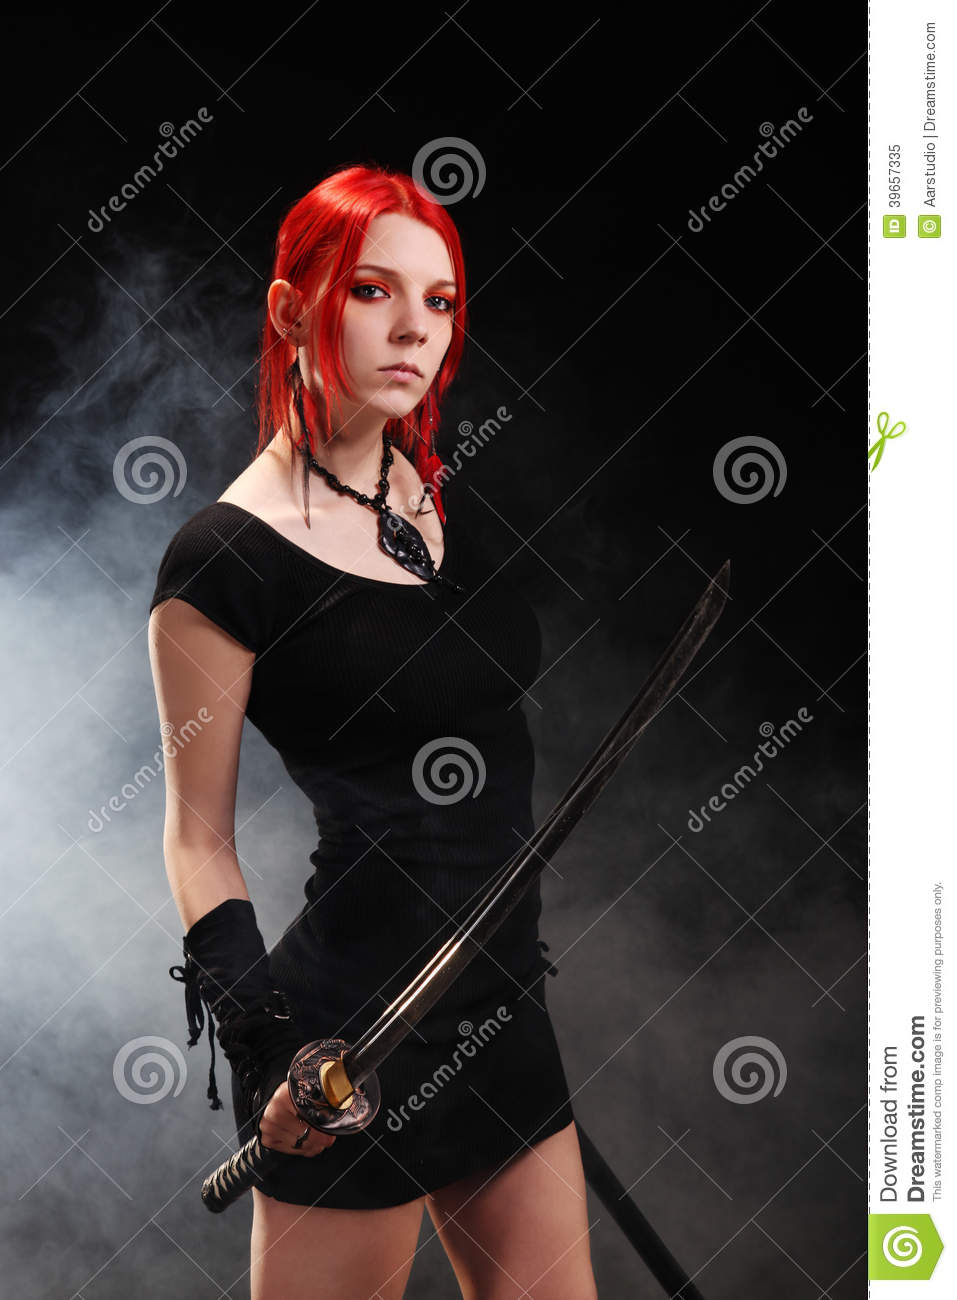 Girl With The Blog: Beautiful Red Hair Girl With Katana Sword Stock Photo